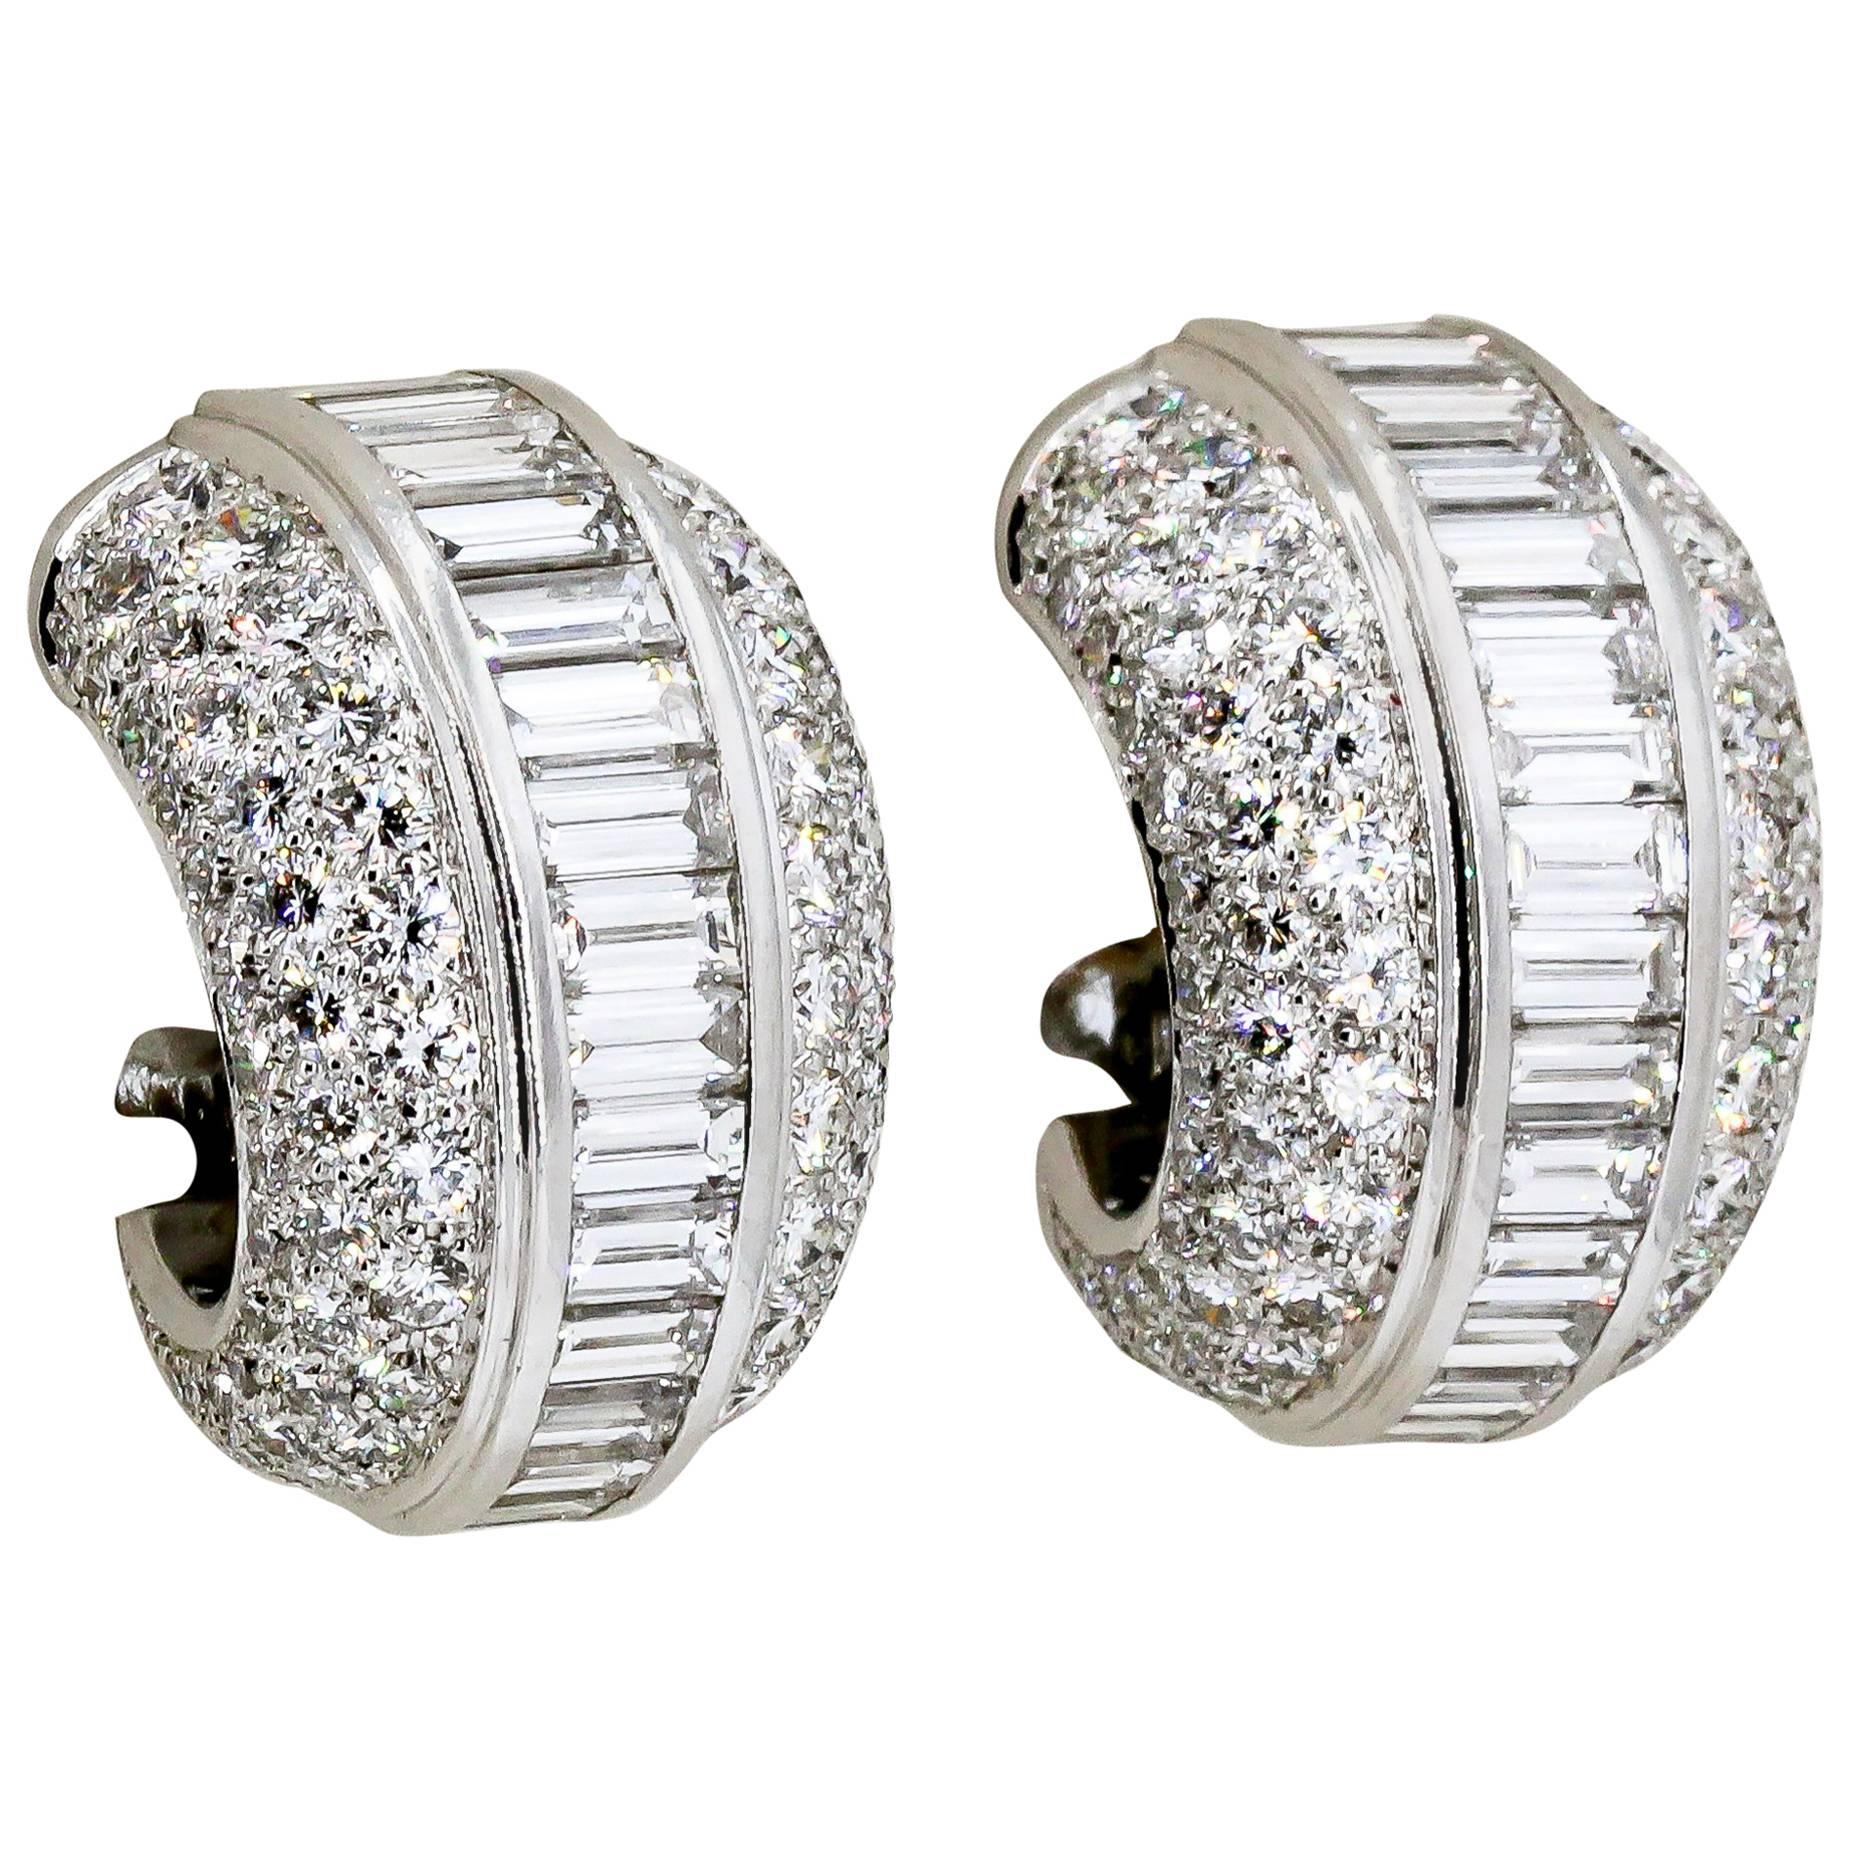 Cartier Diamond and White Gold Hoop Earrings